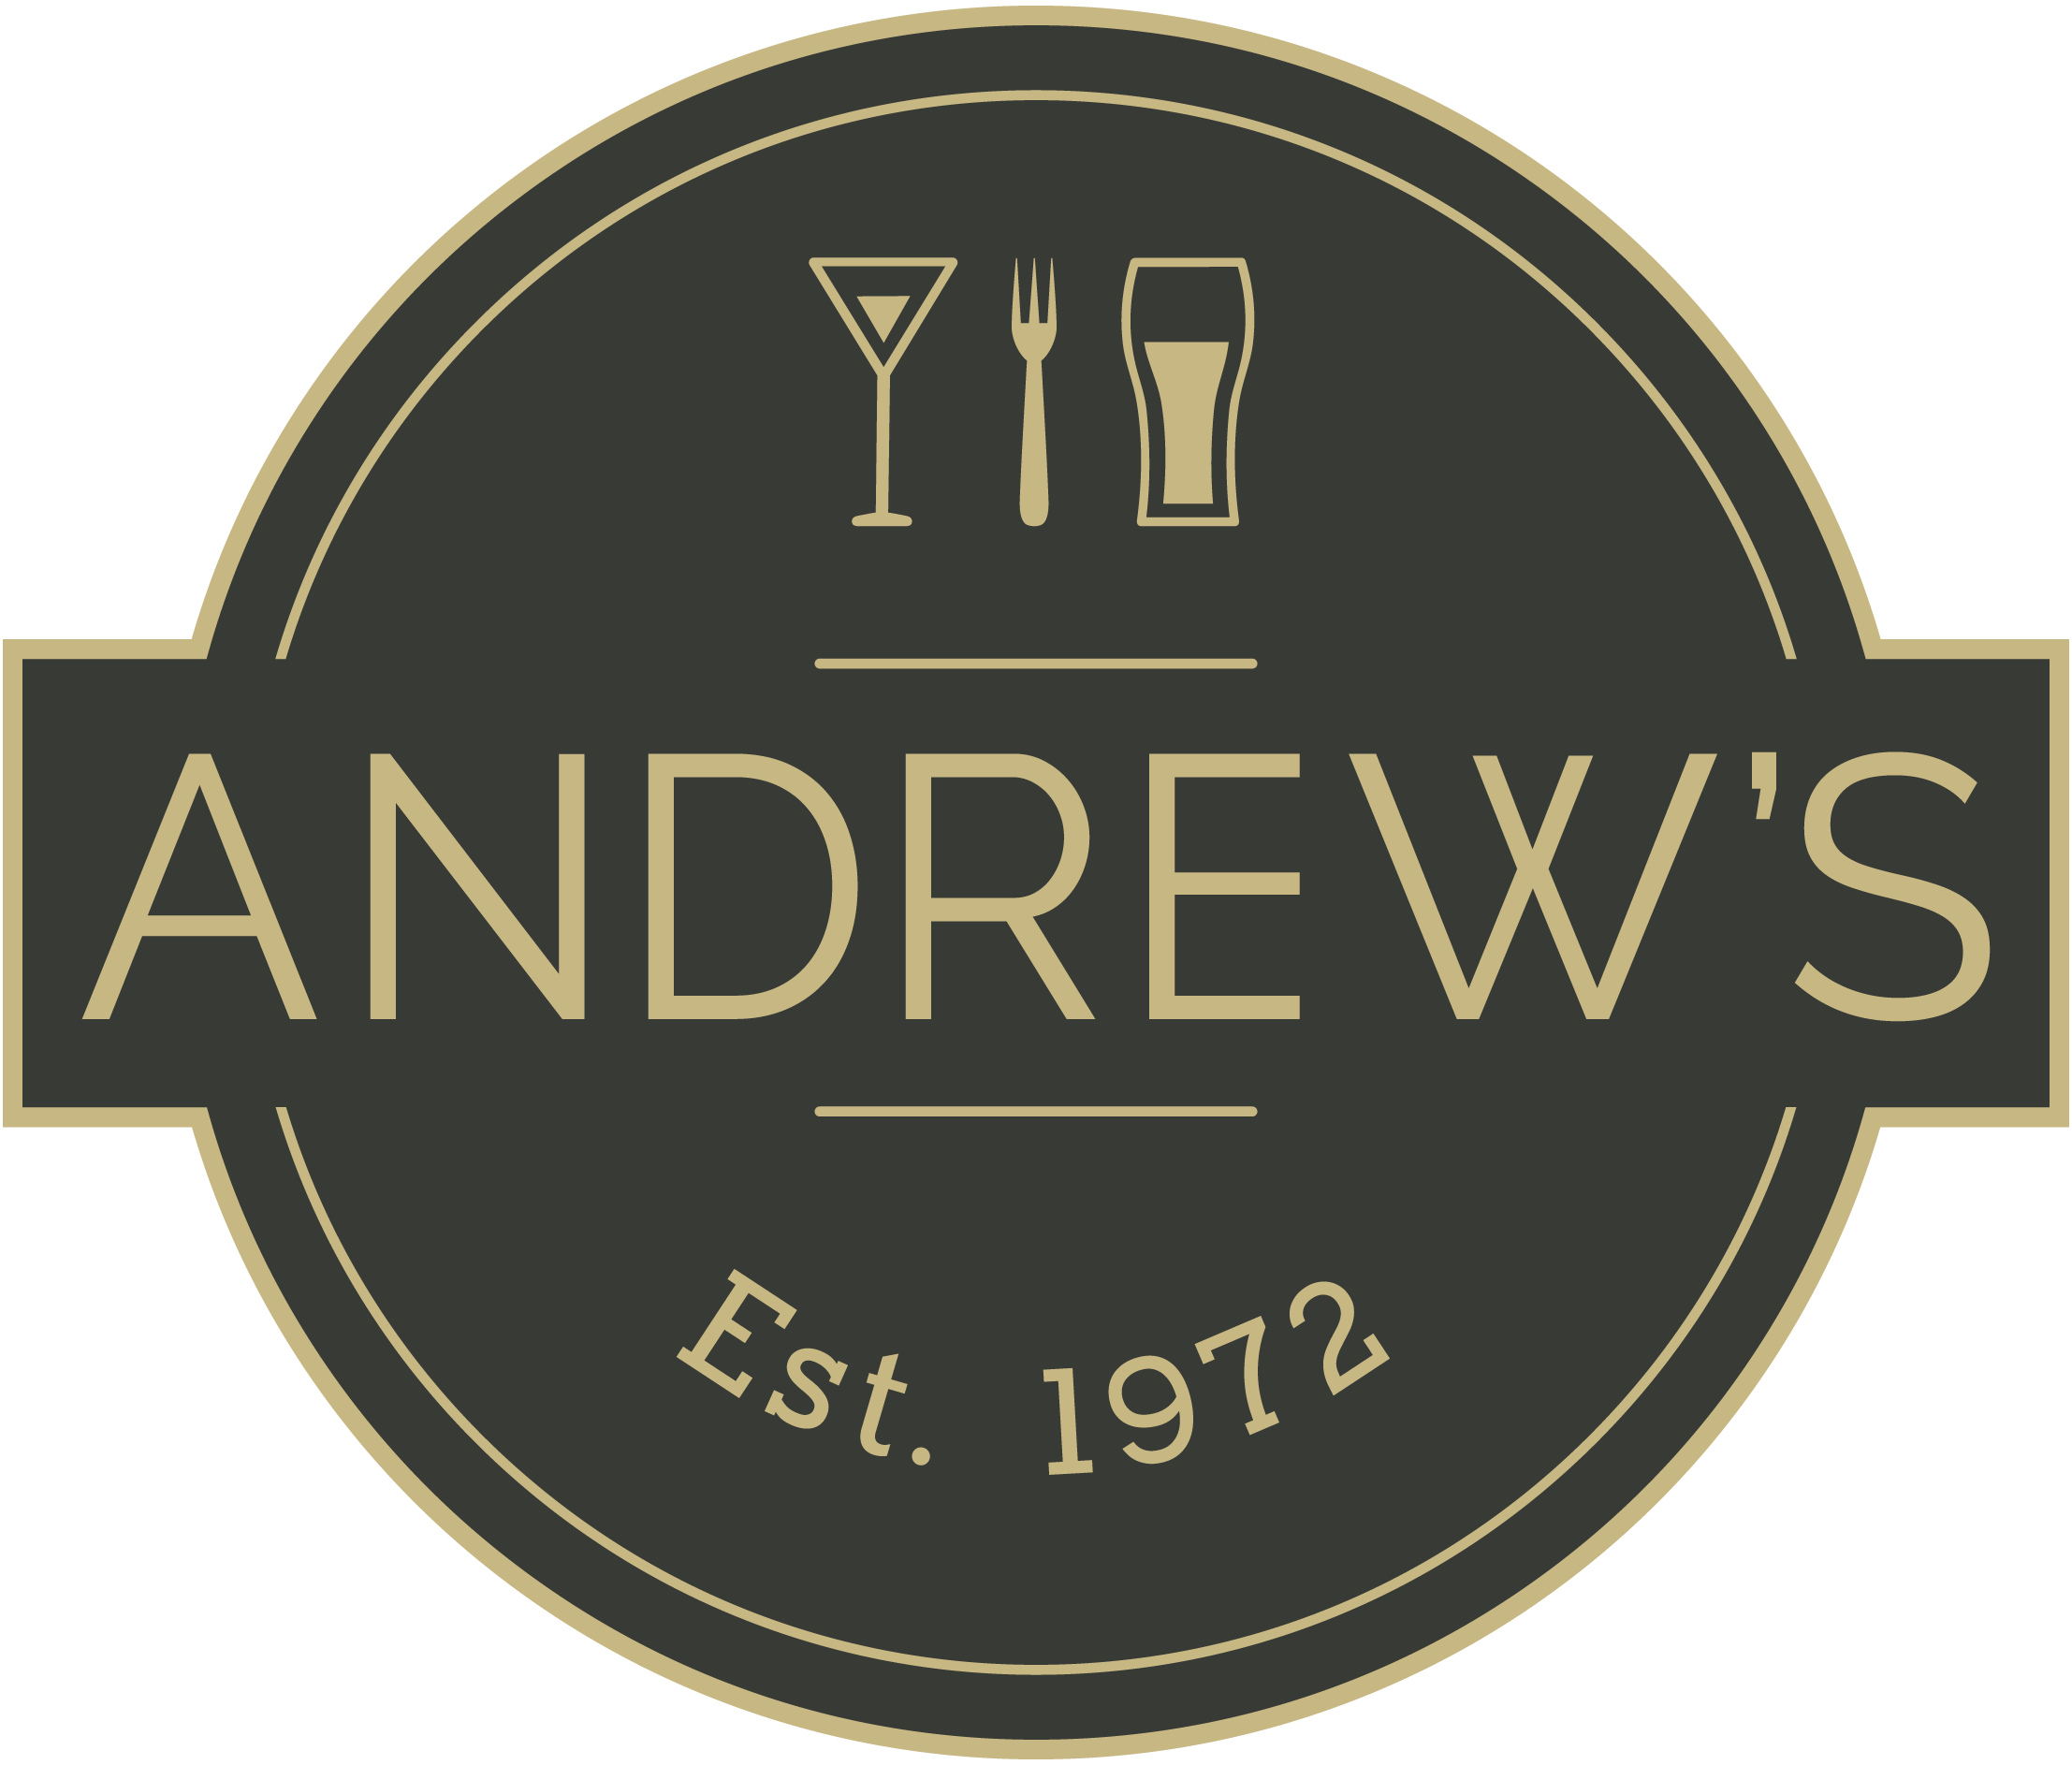 Andrews Capital Grill